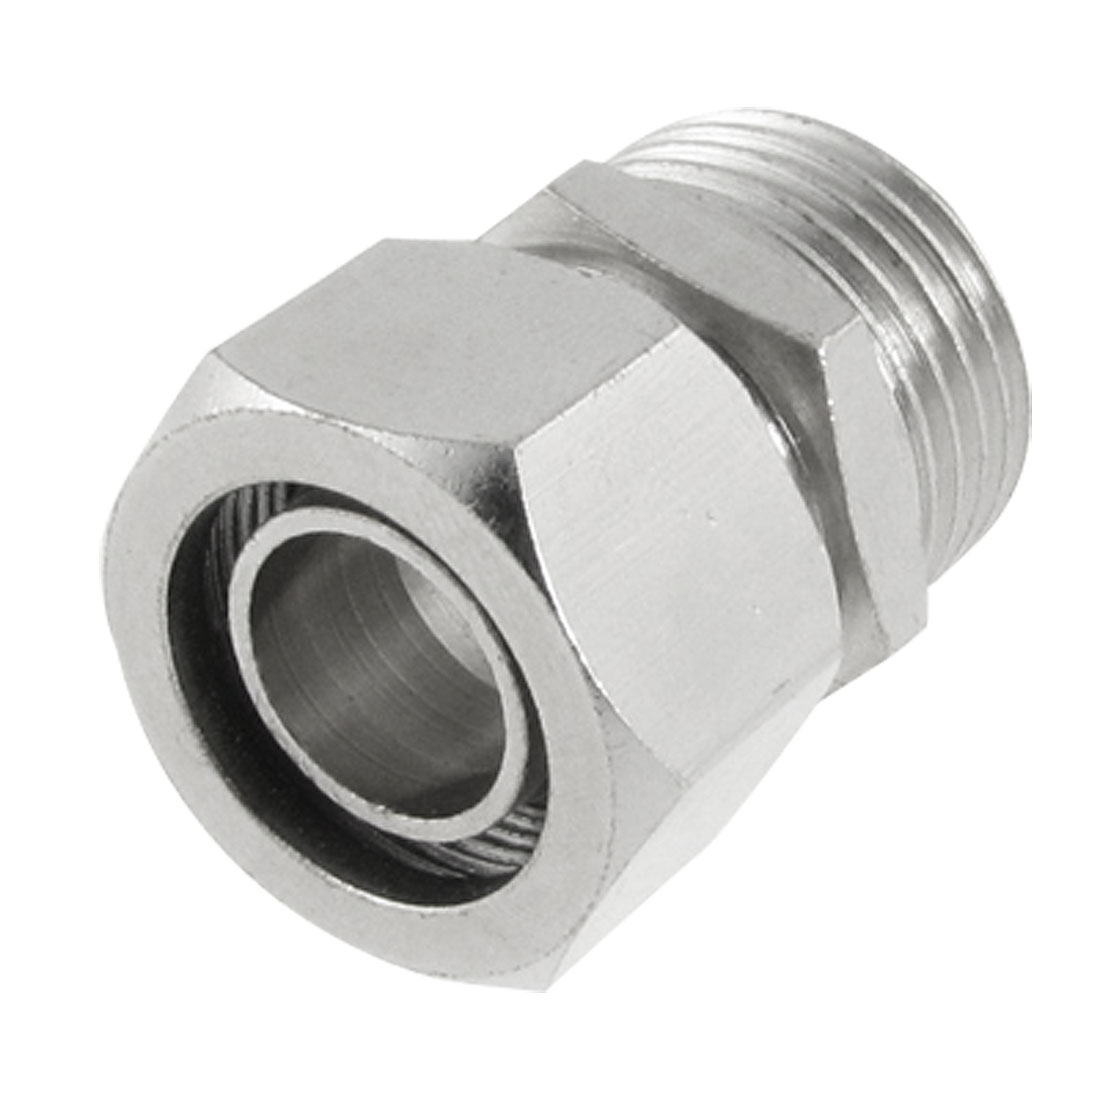 "4/5"" Male Thread Pneumatic Air Fitting Quick Connector Coupler for 1/2"" x 5/8"" Tube"